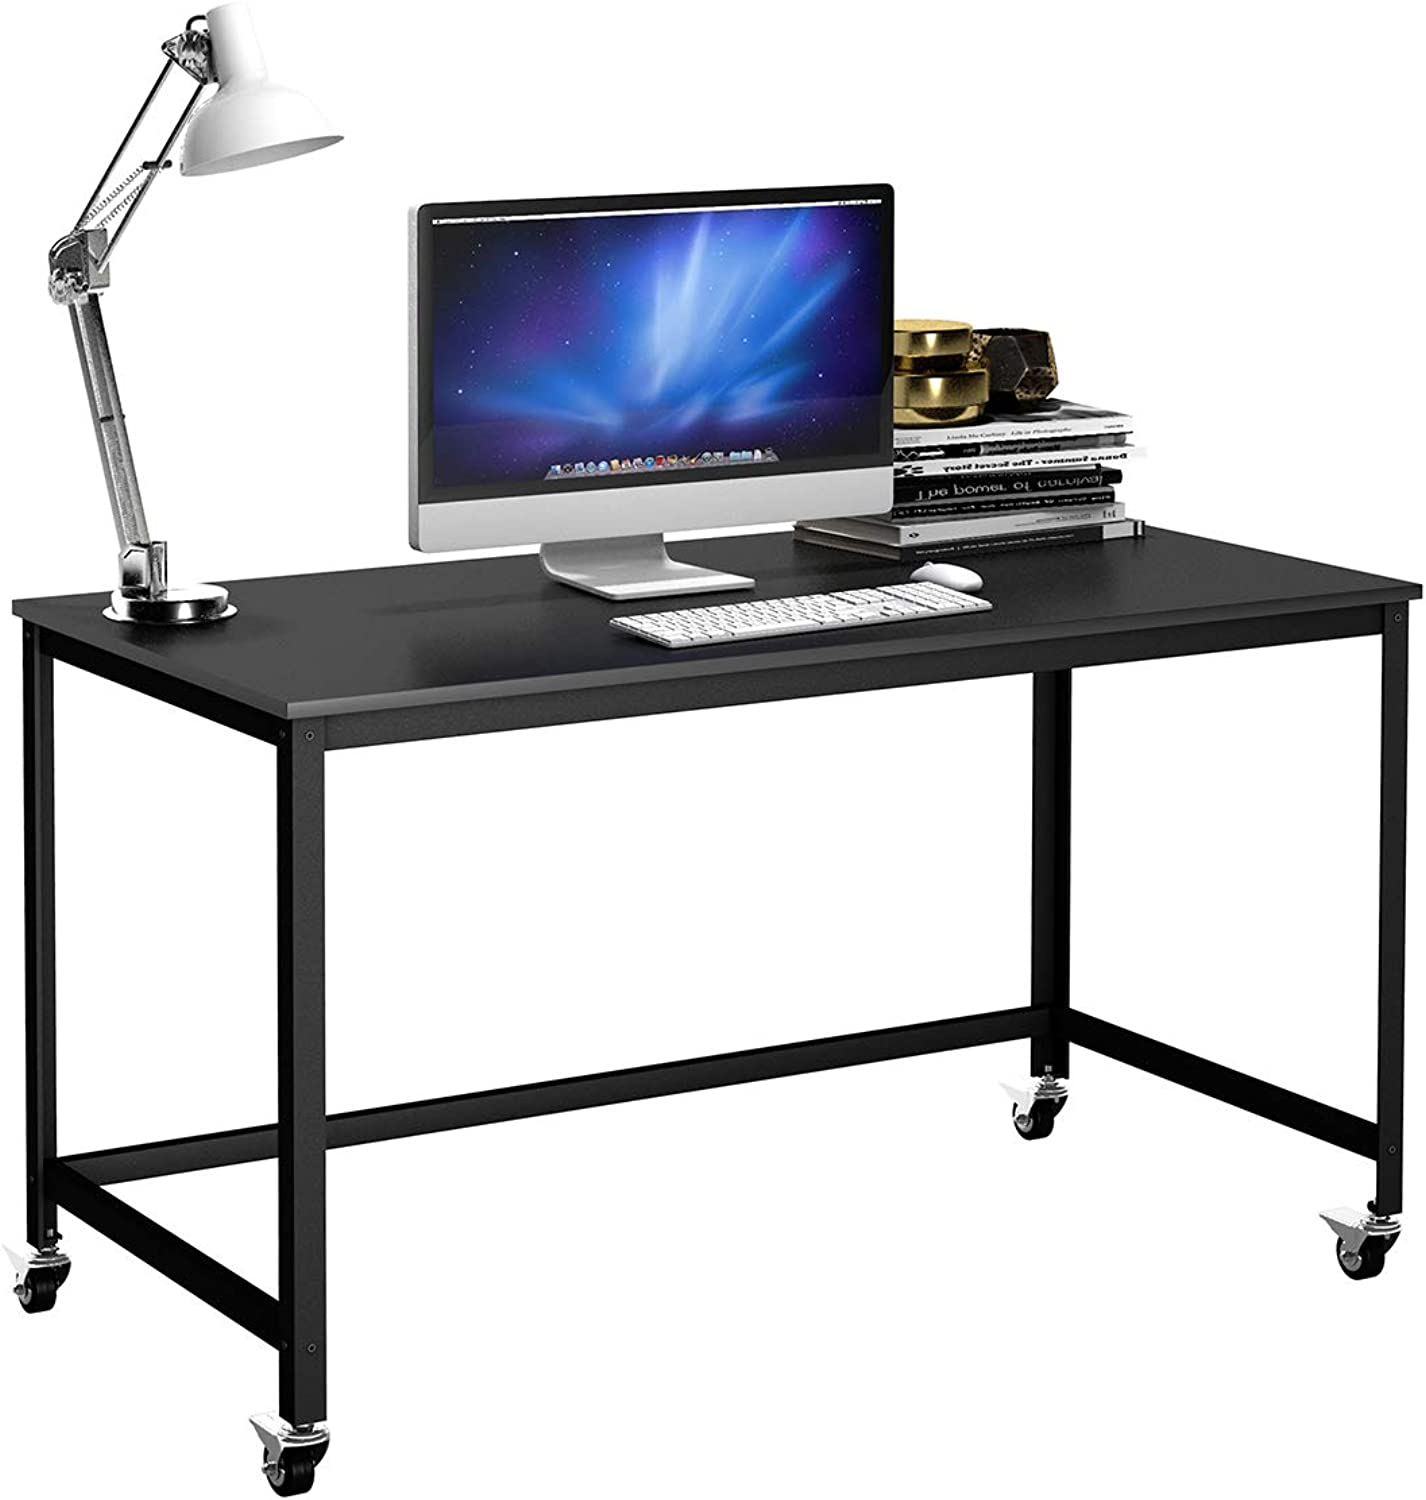 Tangkula Computer Desk, Wood Portable Compact Simple Style Home Office Study Table Writing Desk Workstation with 4 Smooth Wheels, Home Office Collection Work Table